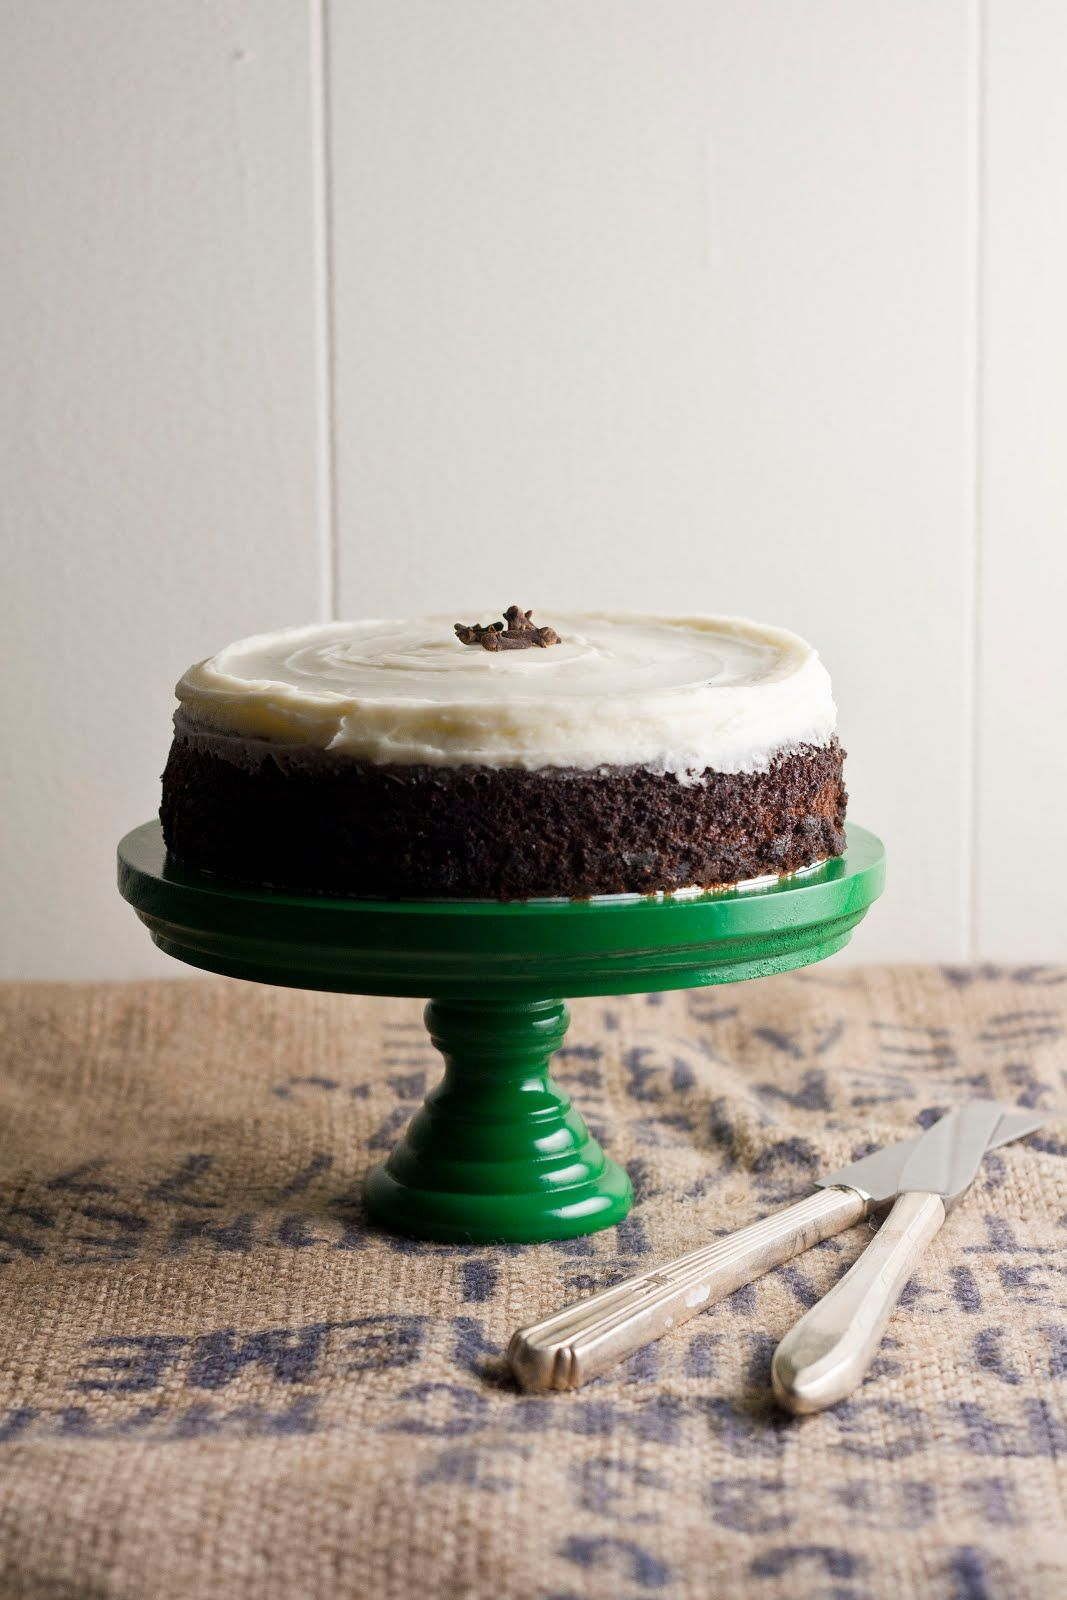 Hummingbird High - A Desserts and Baking Food Blog in Portland, Oregon: Spicy Gingerbread Cake